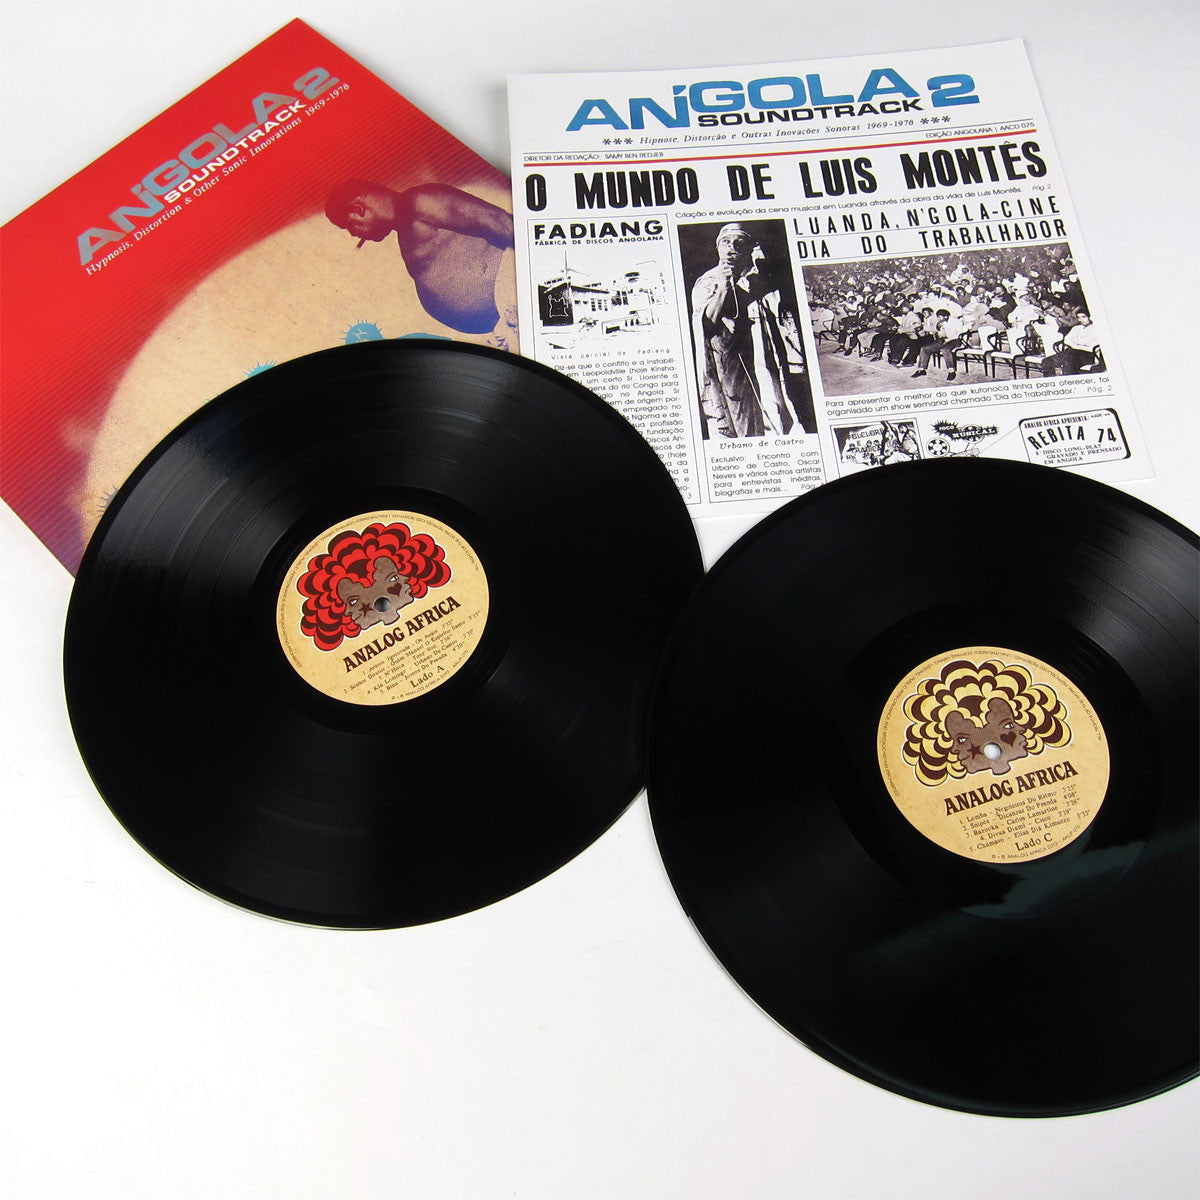 Analog Africa: Angola 2 Soundtrack Hypnosis, Distortion & Other Sonic Innovations 1969-1978 2LP details